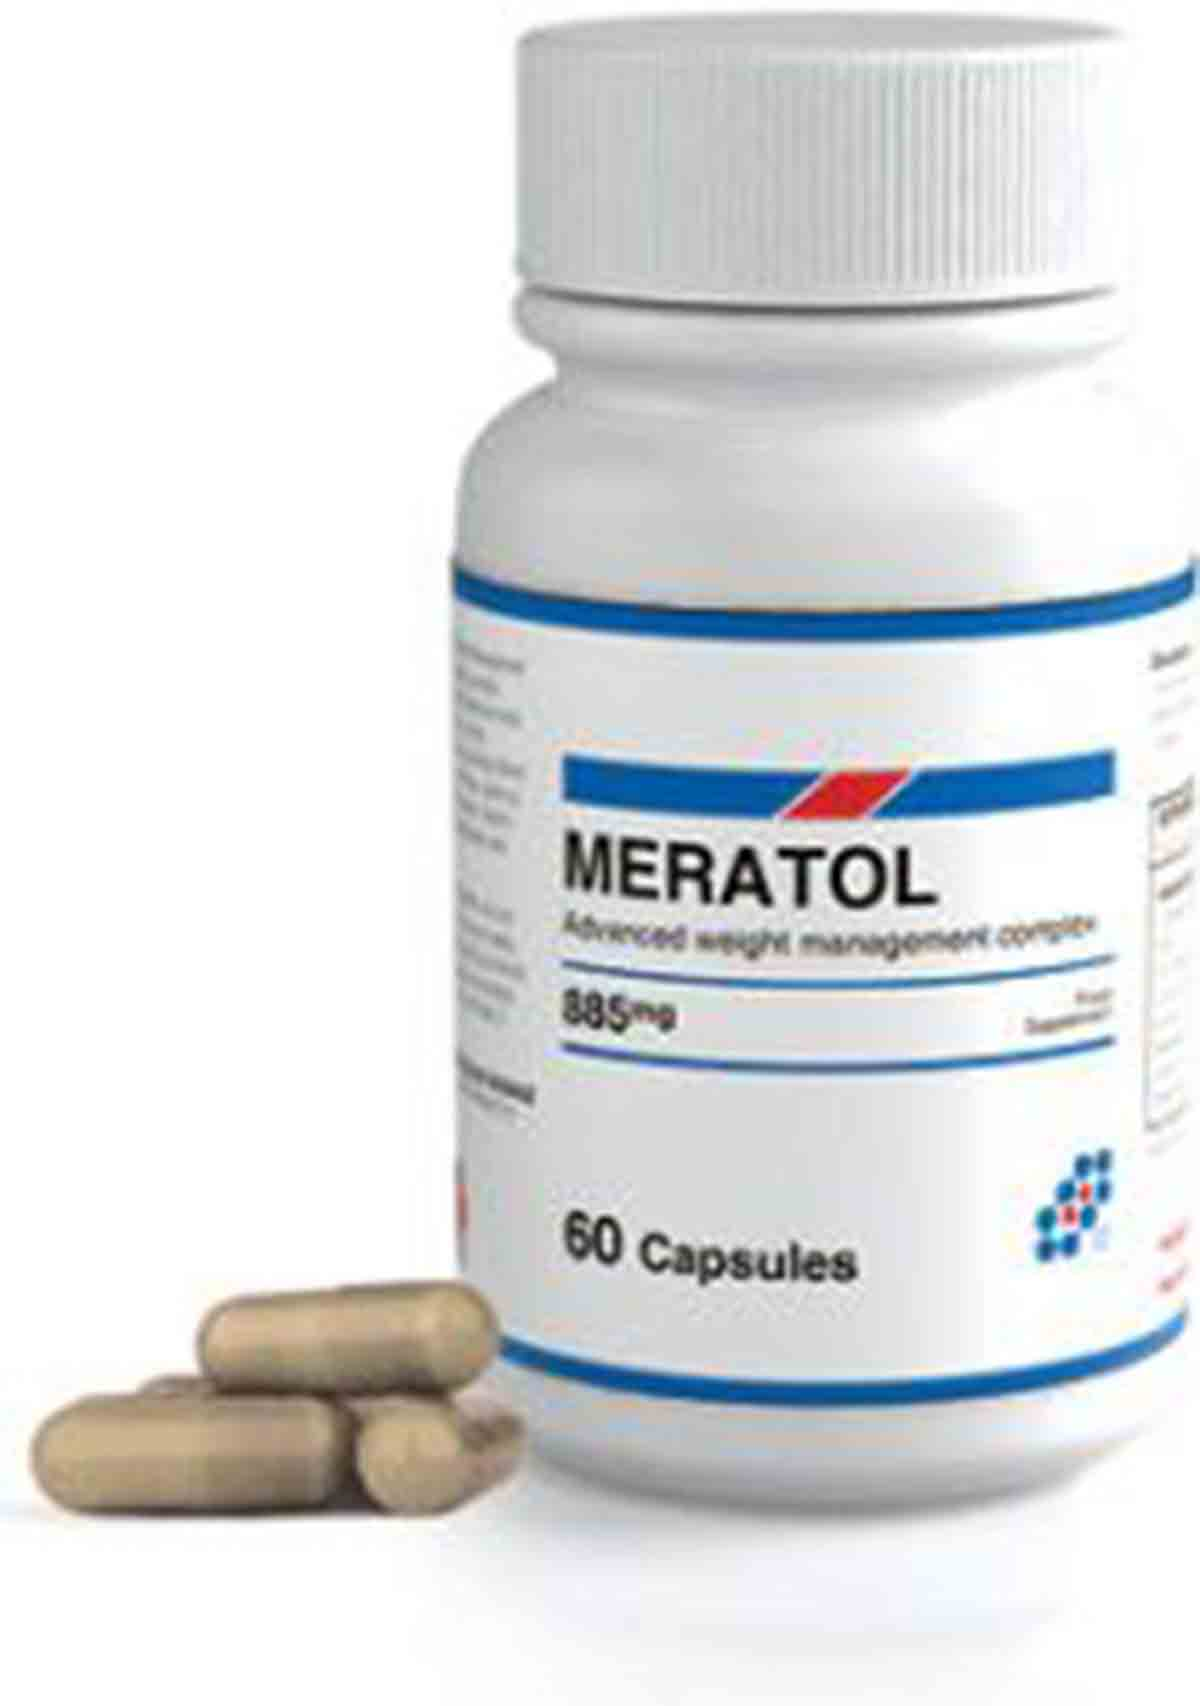 Meratol Review | Buy or a Scam?